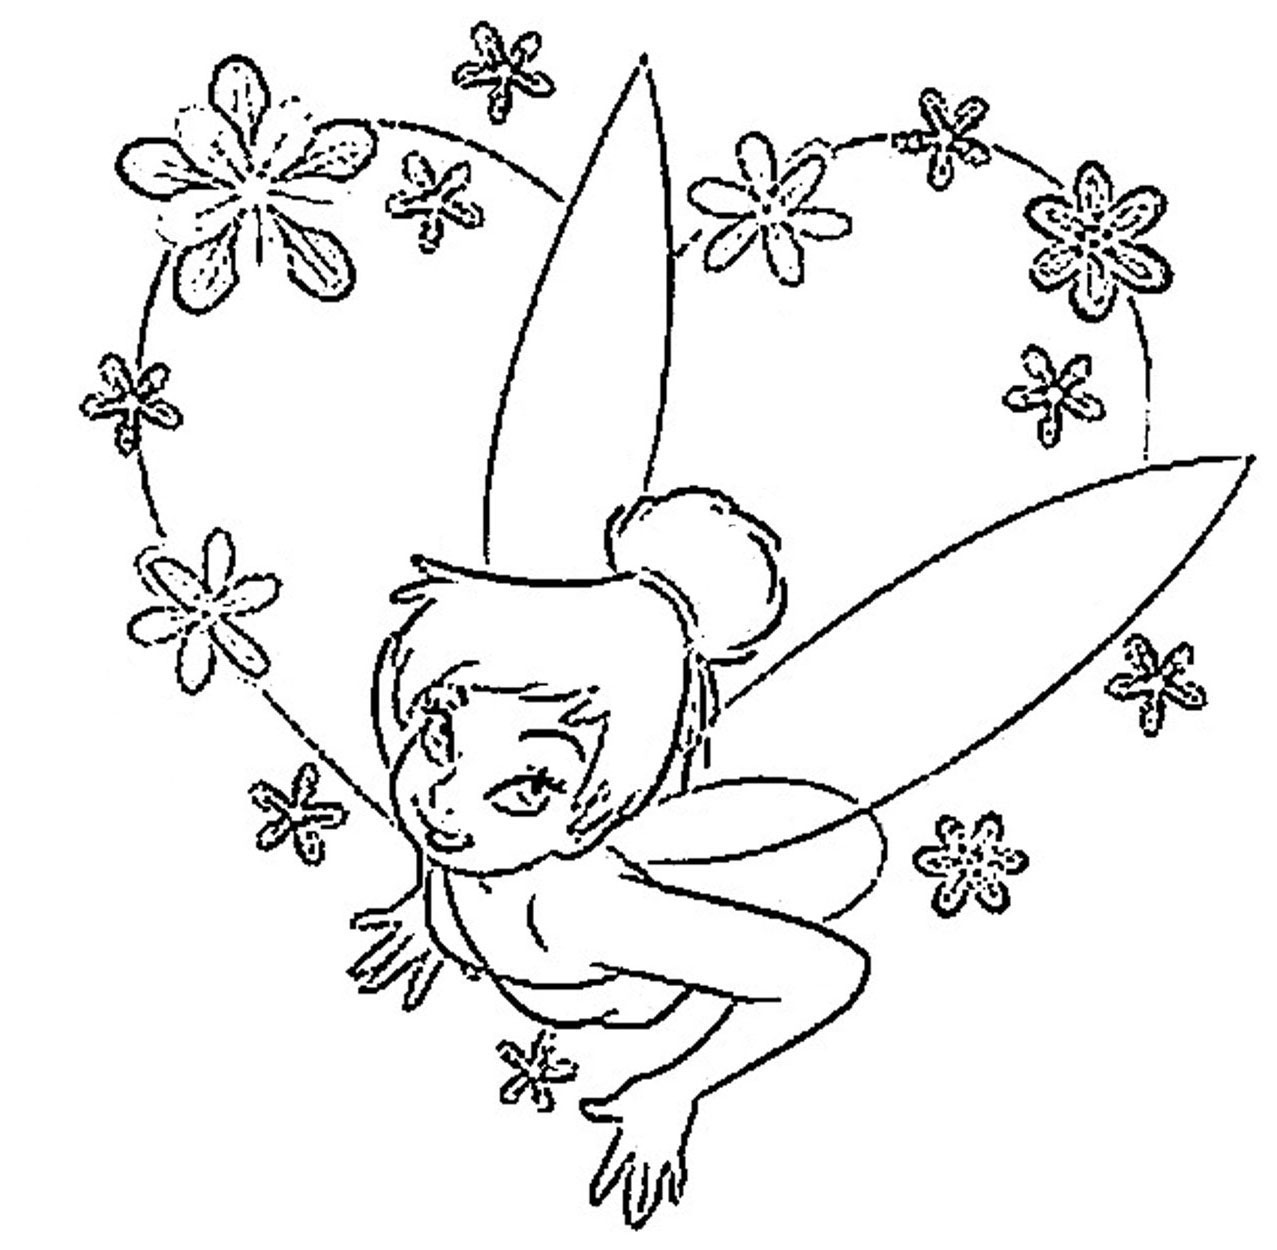 find thousands of disney princess coloring pages to print and color